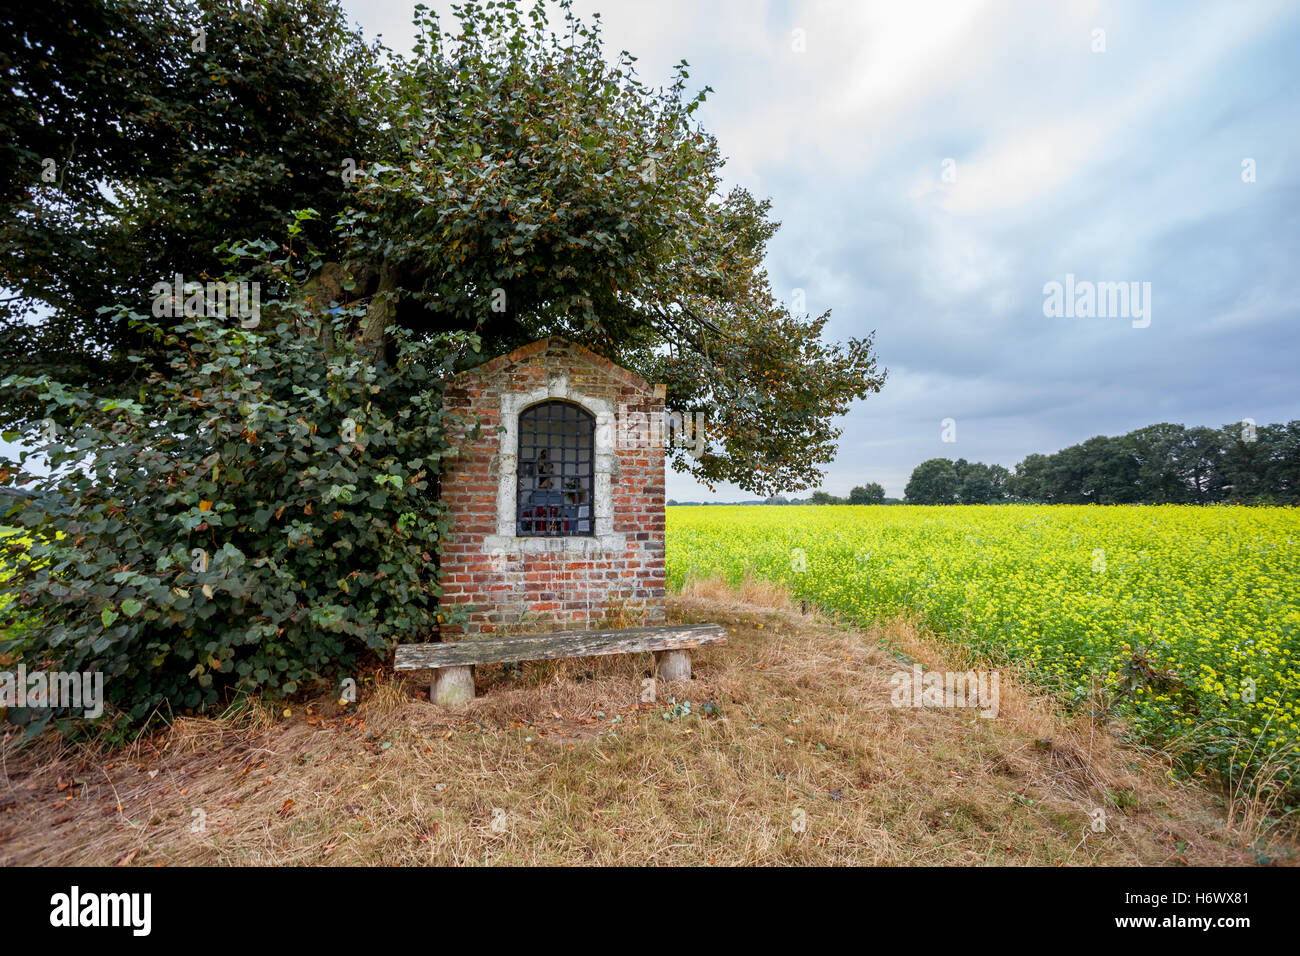 on land with yellow flowers, there is a small chapel - Stock Image